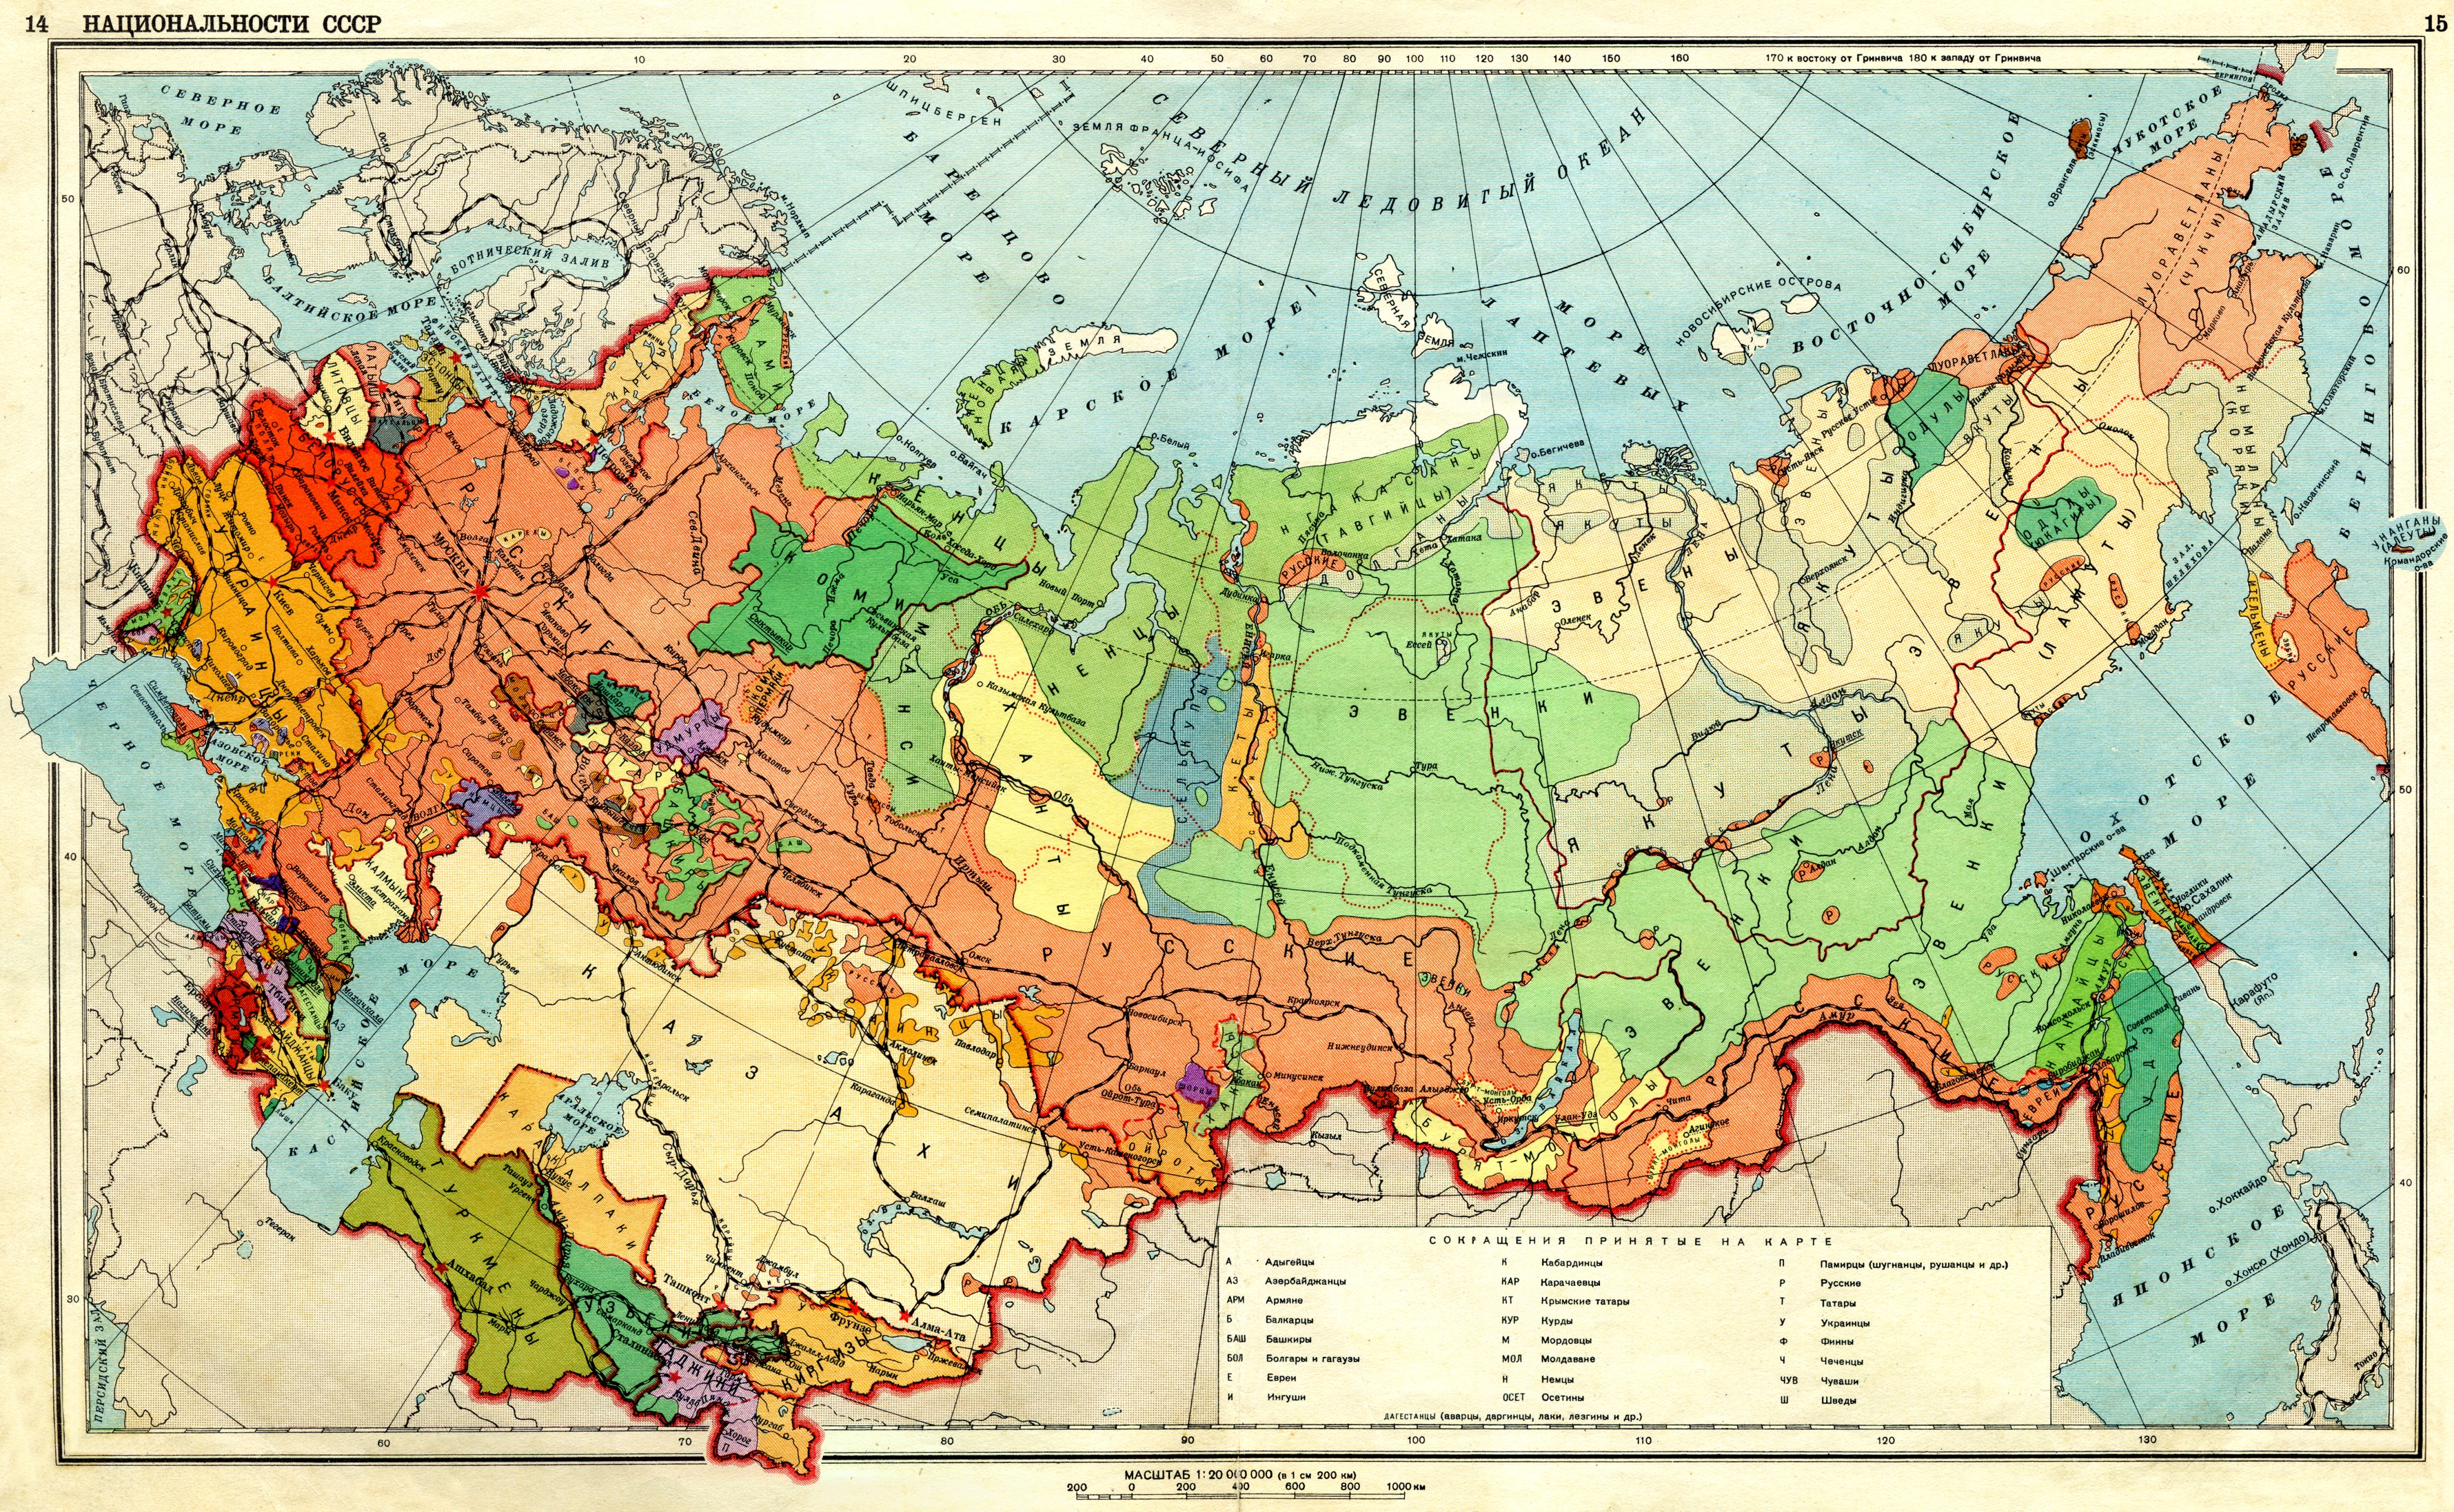 1941. Ethnic groups of the USSR